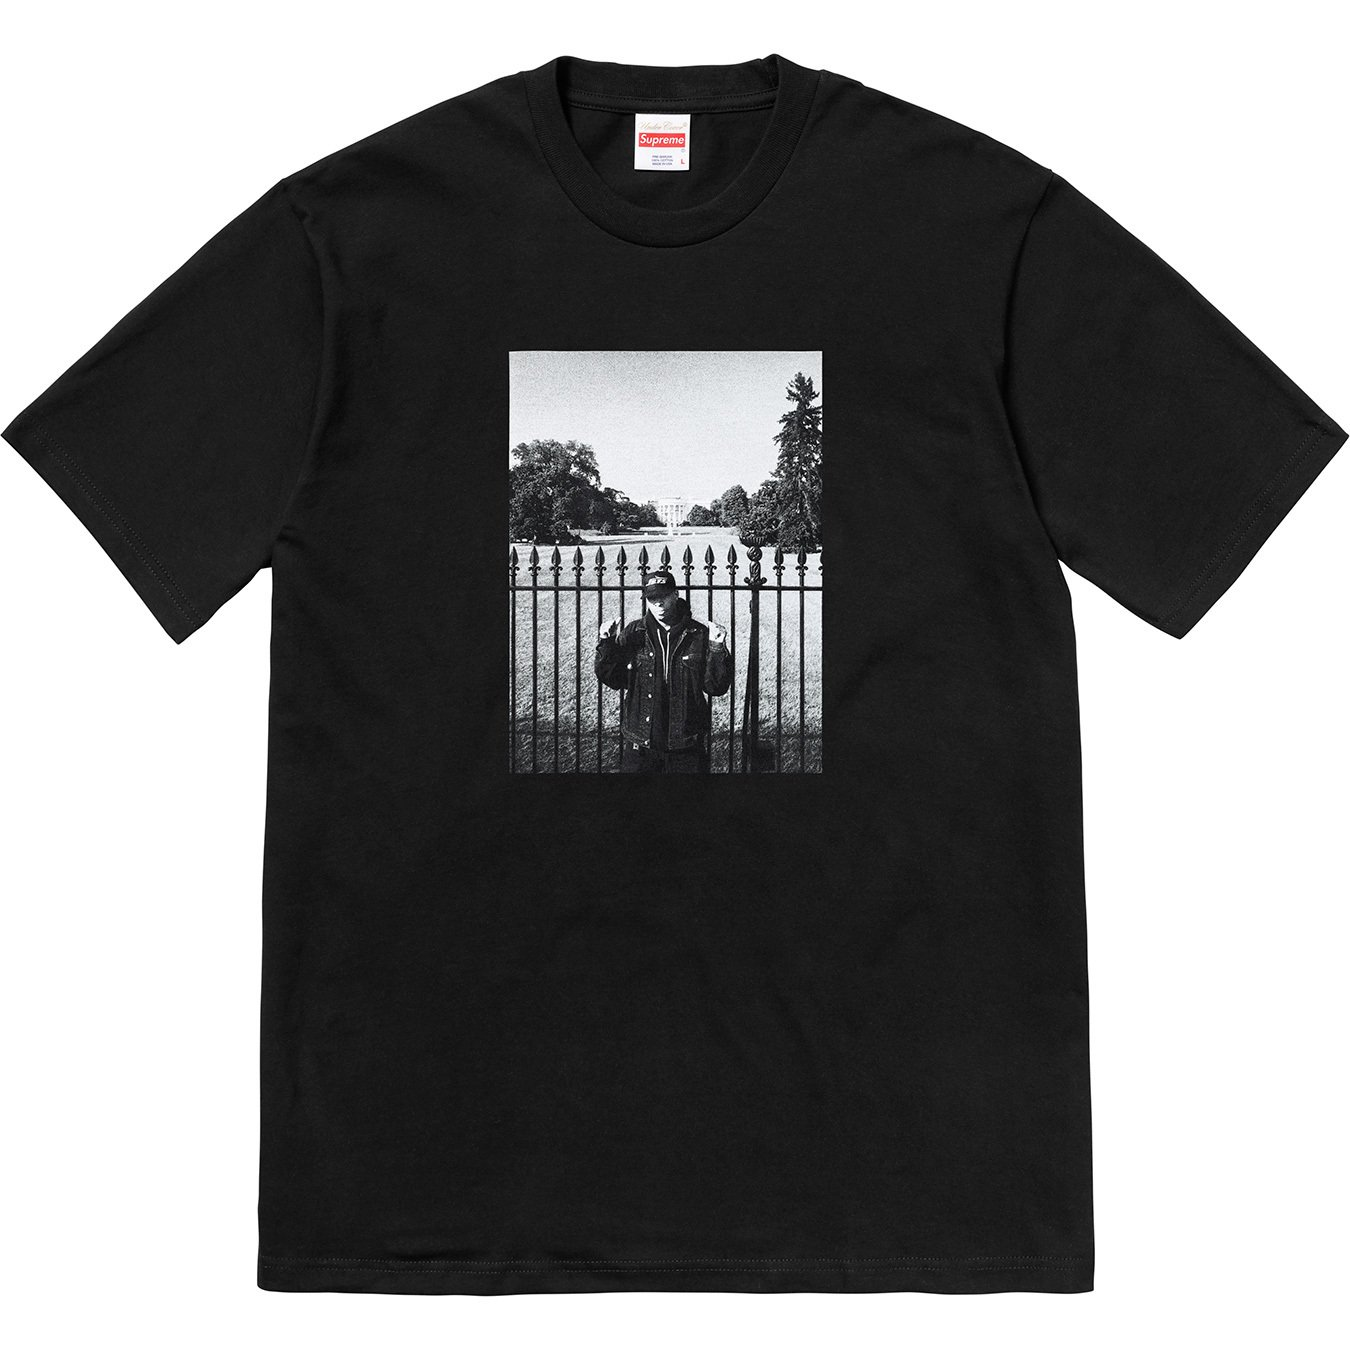 supreme-undercover-public-enemy-18ss-week4-release-20180317-white-house-tee